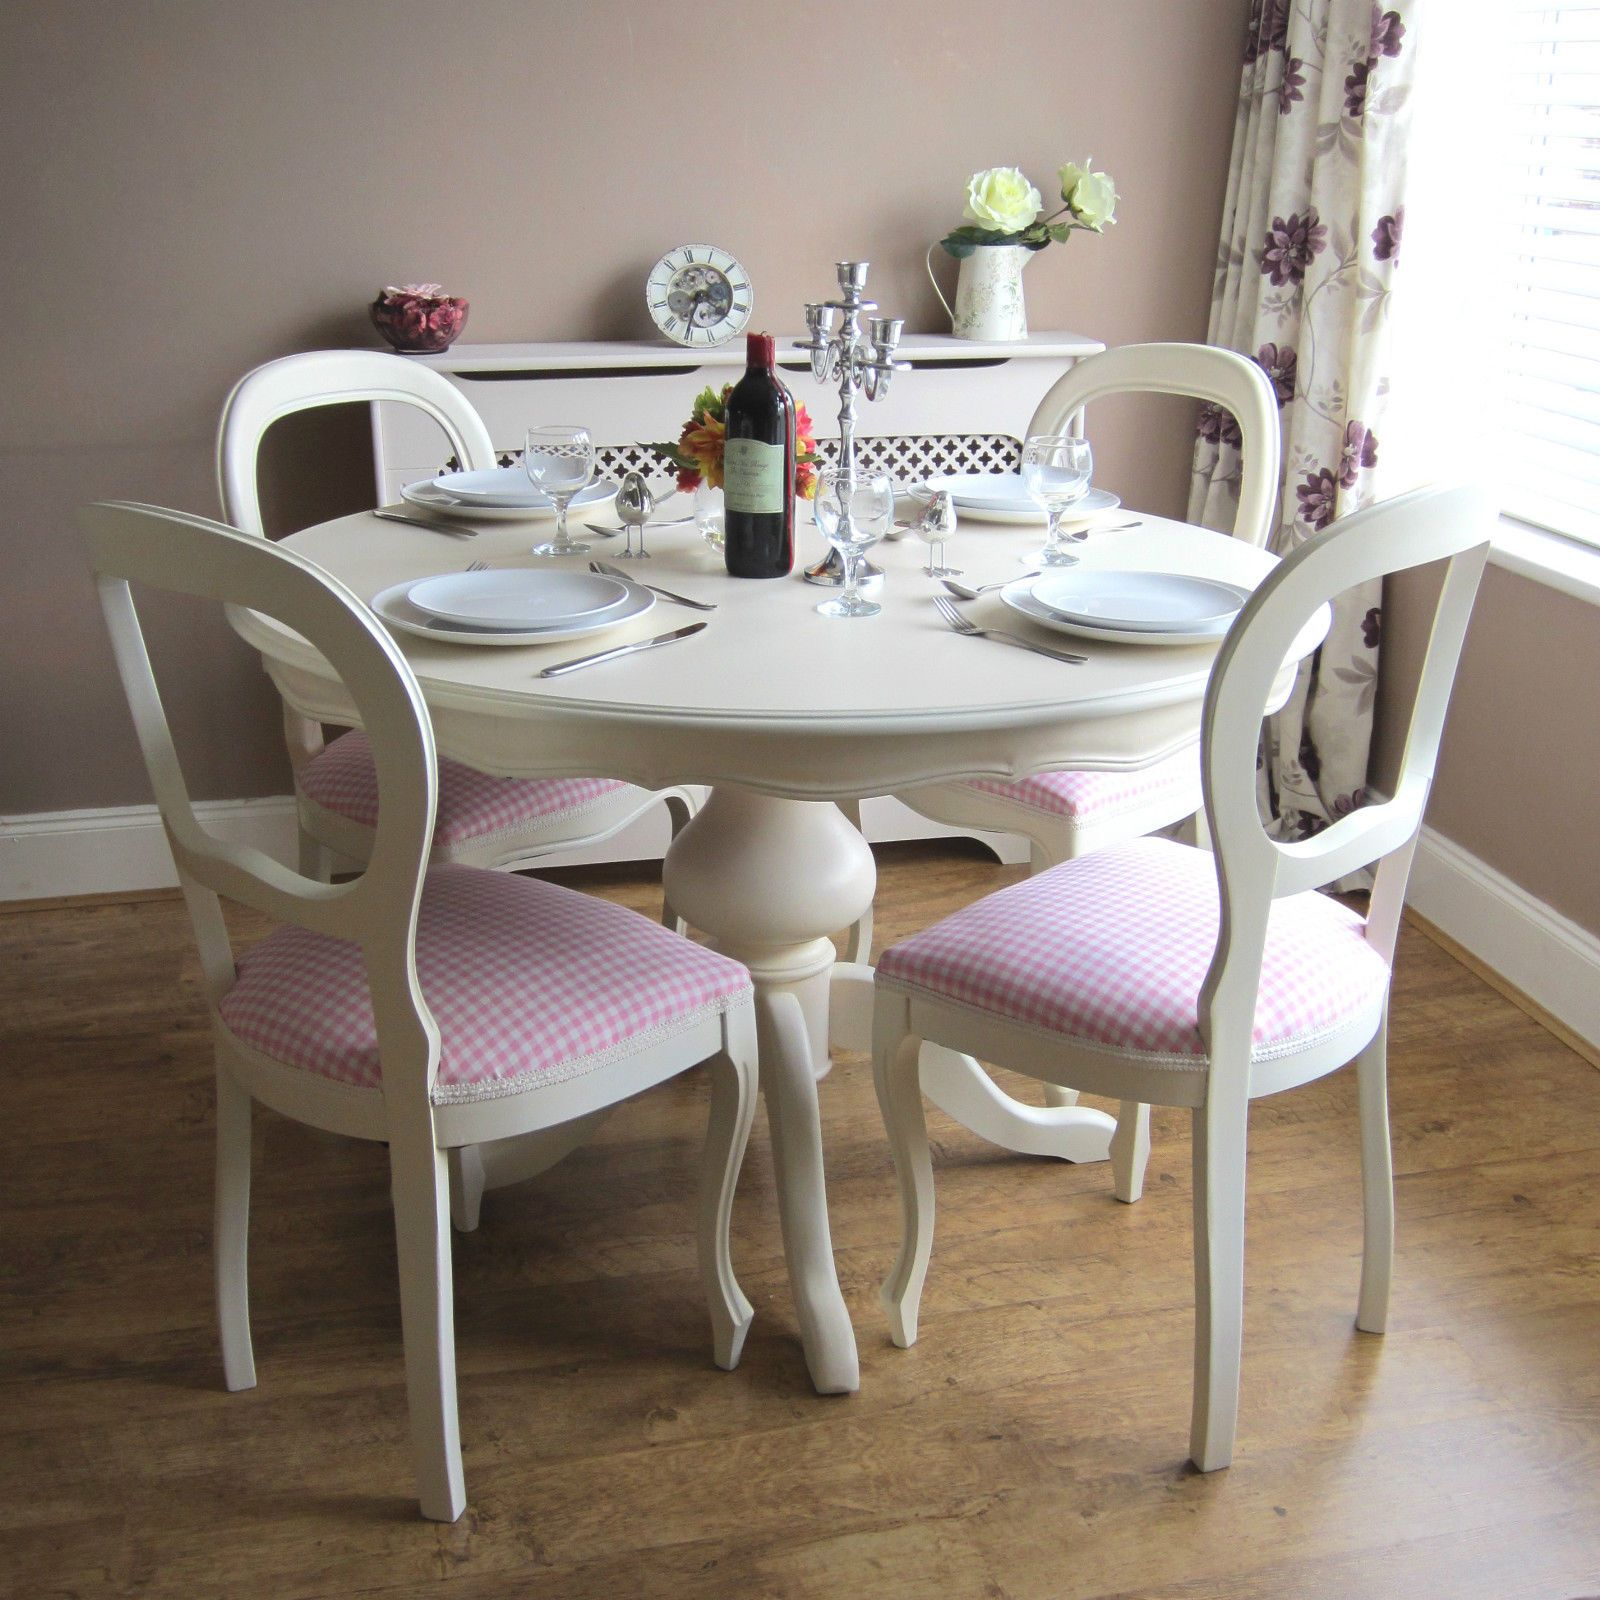 French kitchen table  Print of White Round Kitchen Table and Chairs Design  Kitchen